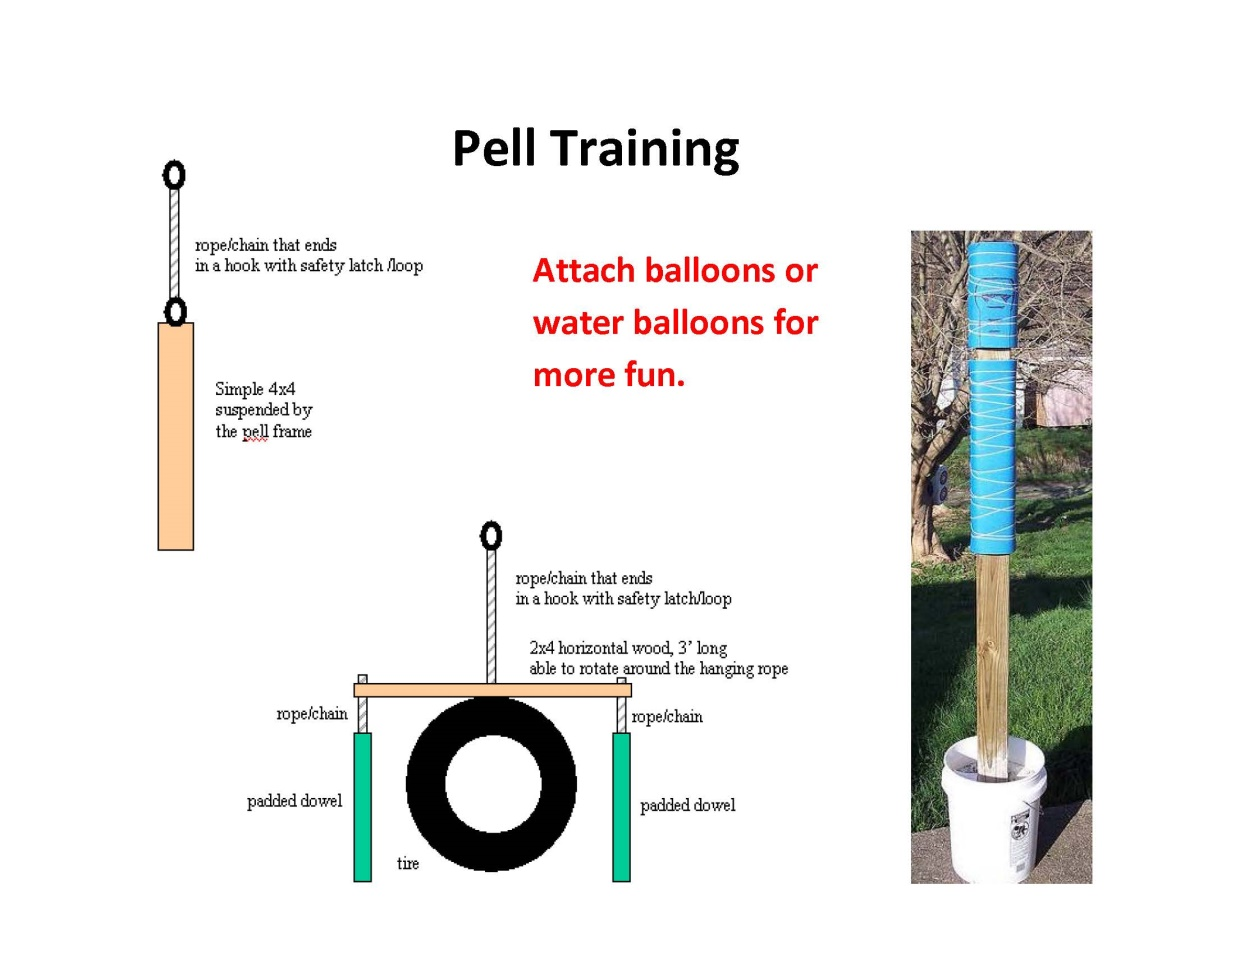 Pell Training